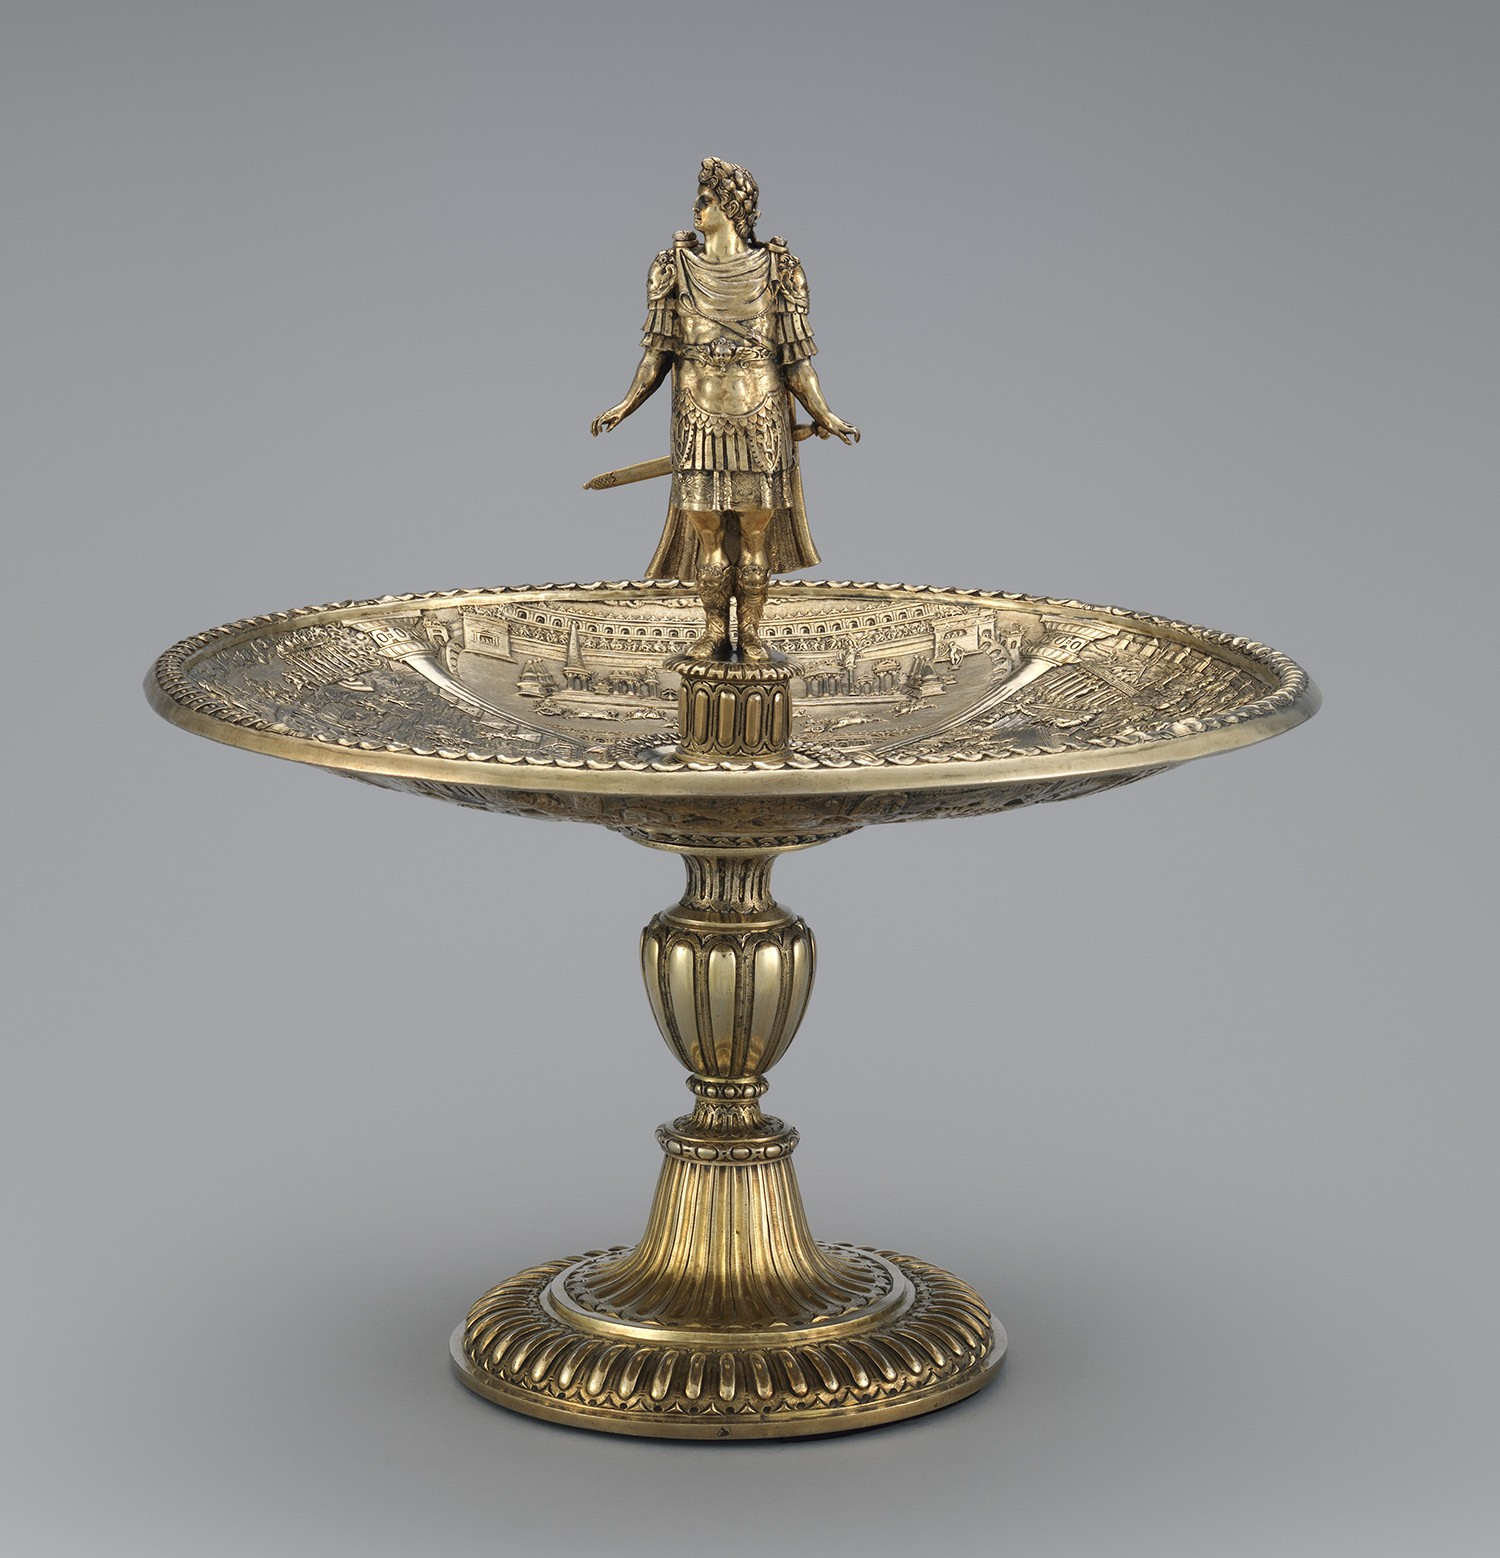 Metropolitan Museum of Art Reassembles 16th-century Silver Table Ornaments For First Time in Two Centuries